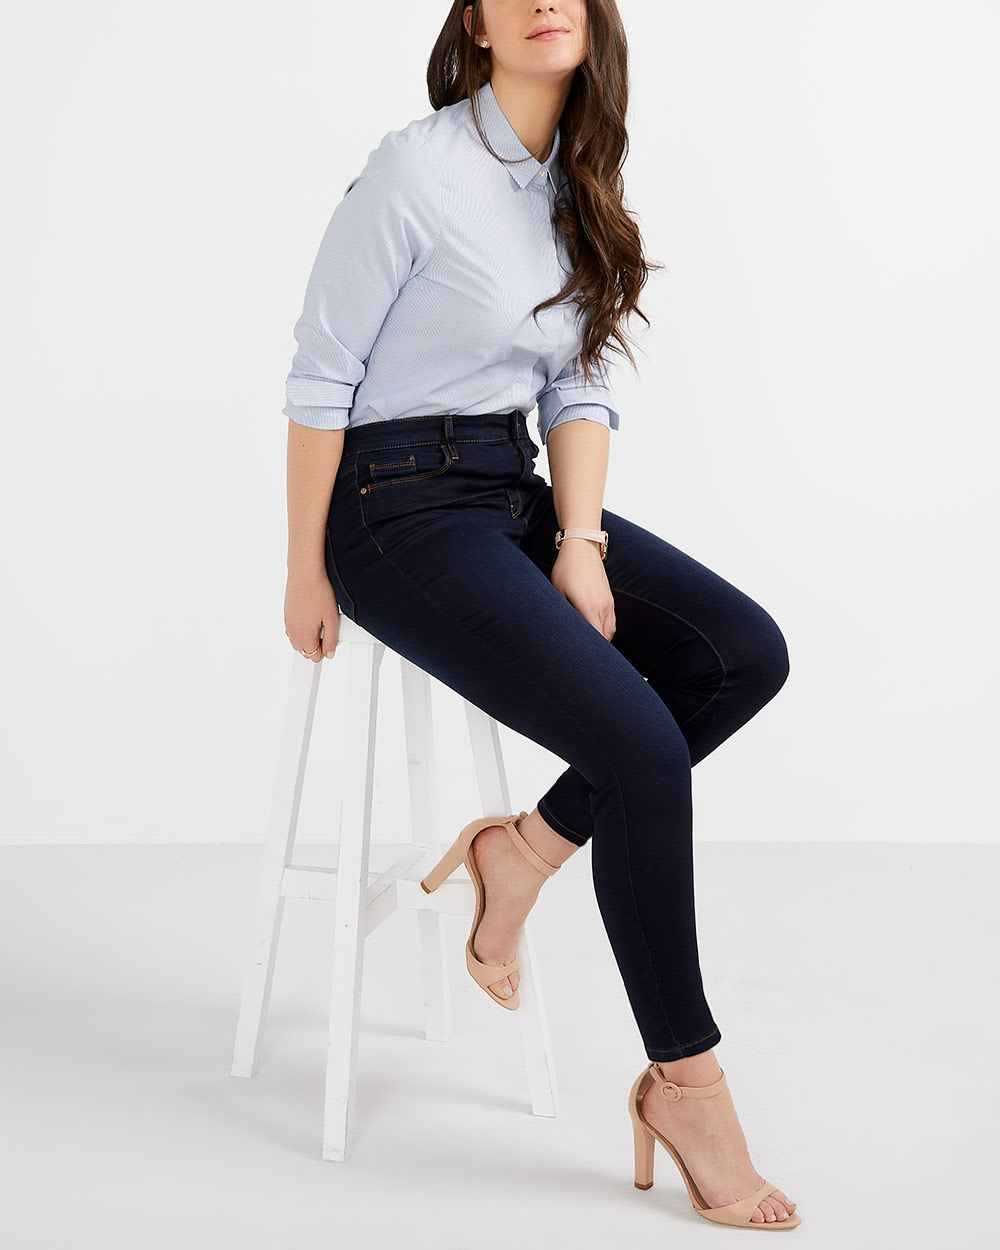 The Signature Soft Dark Wash High Rise Skinny Jeans